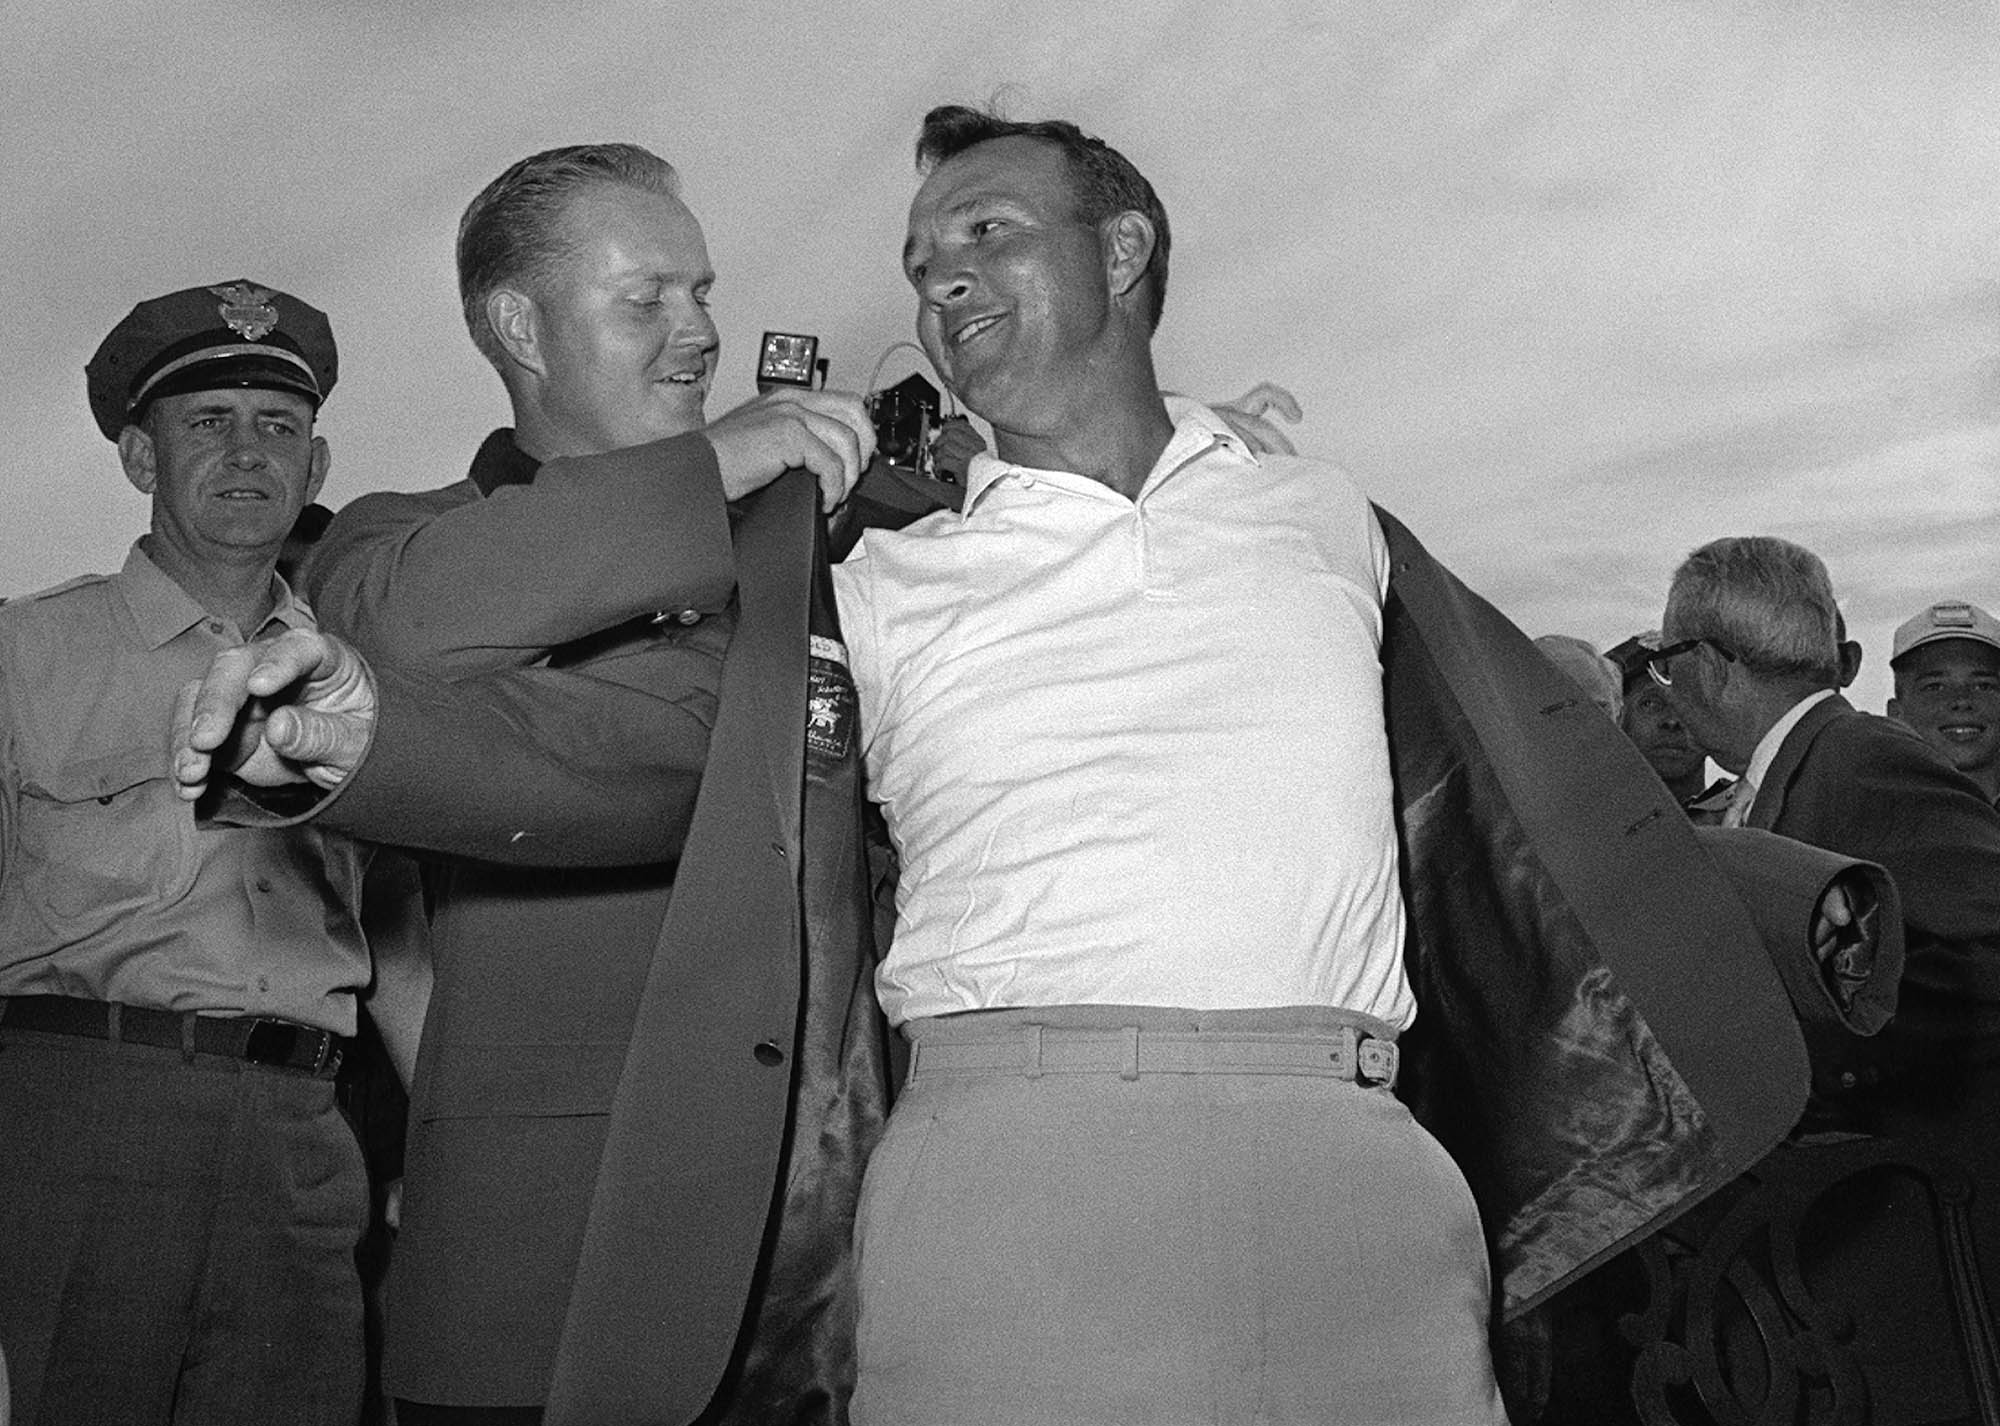 Arnold Palmer, right, slips into his green jacket with help from Jack Nicklaus after winning the Masters golf championship, in Augusta, Ga, April 12, 1964.